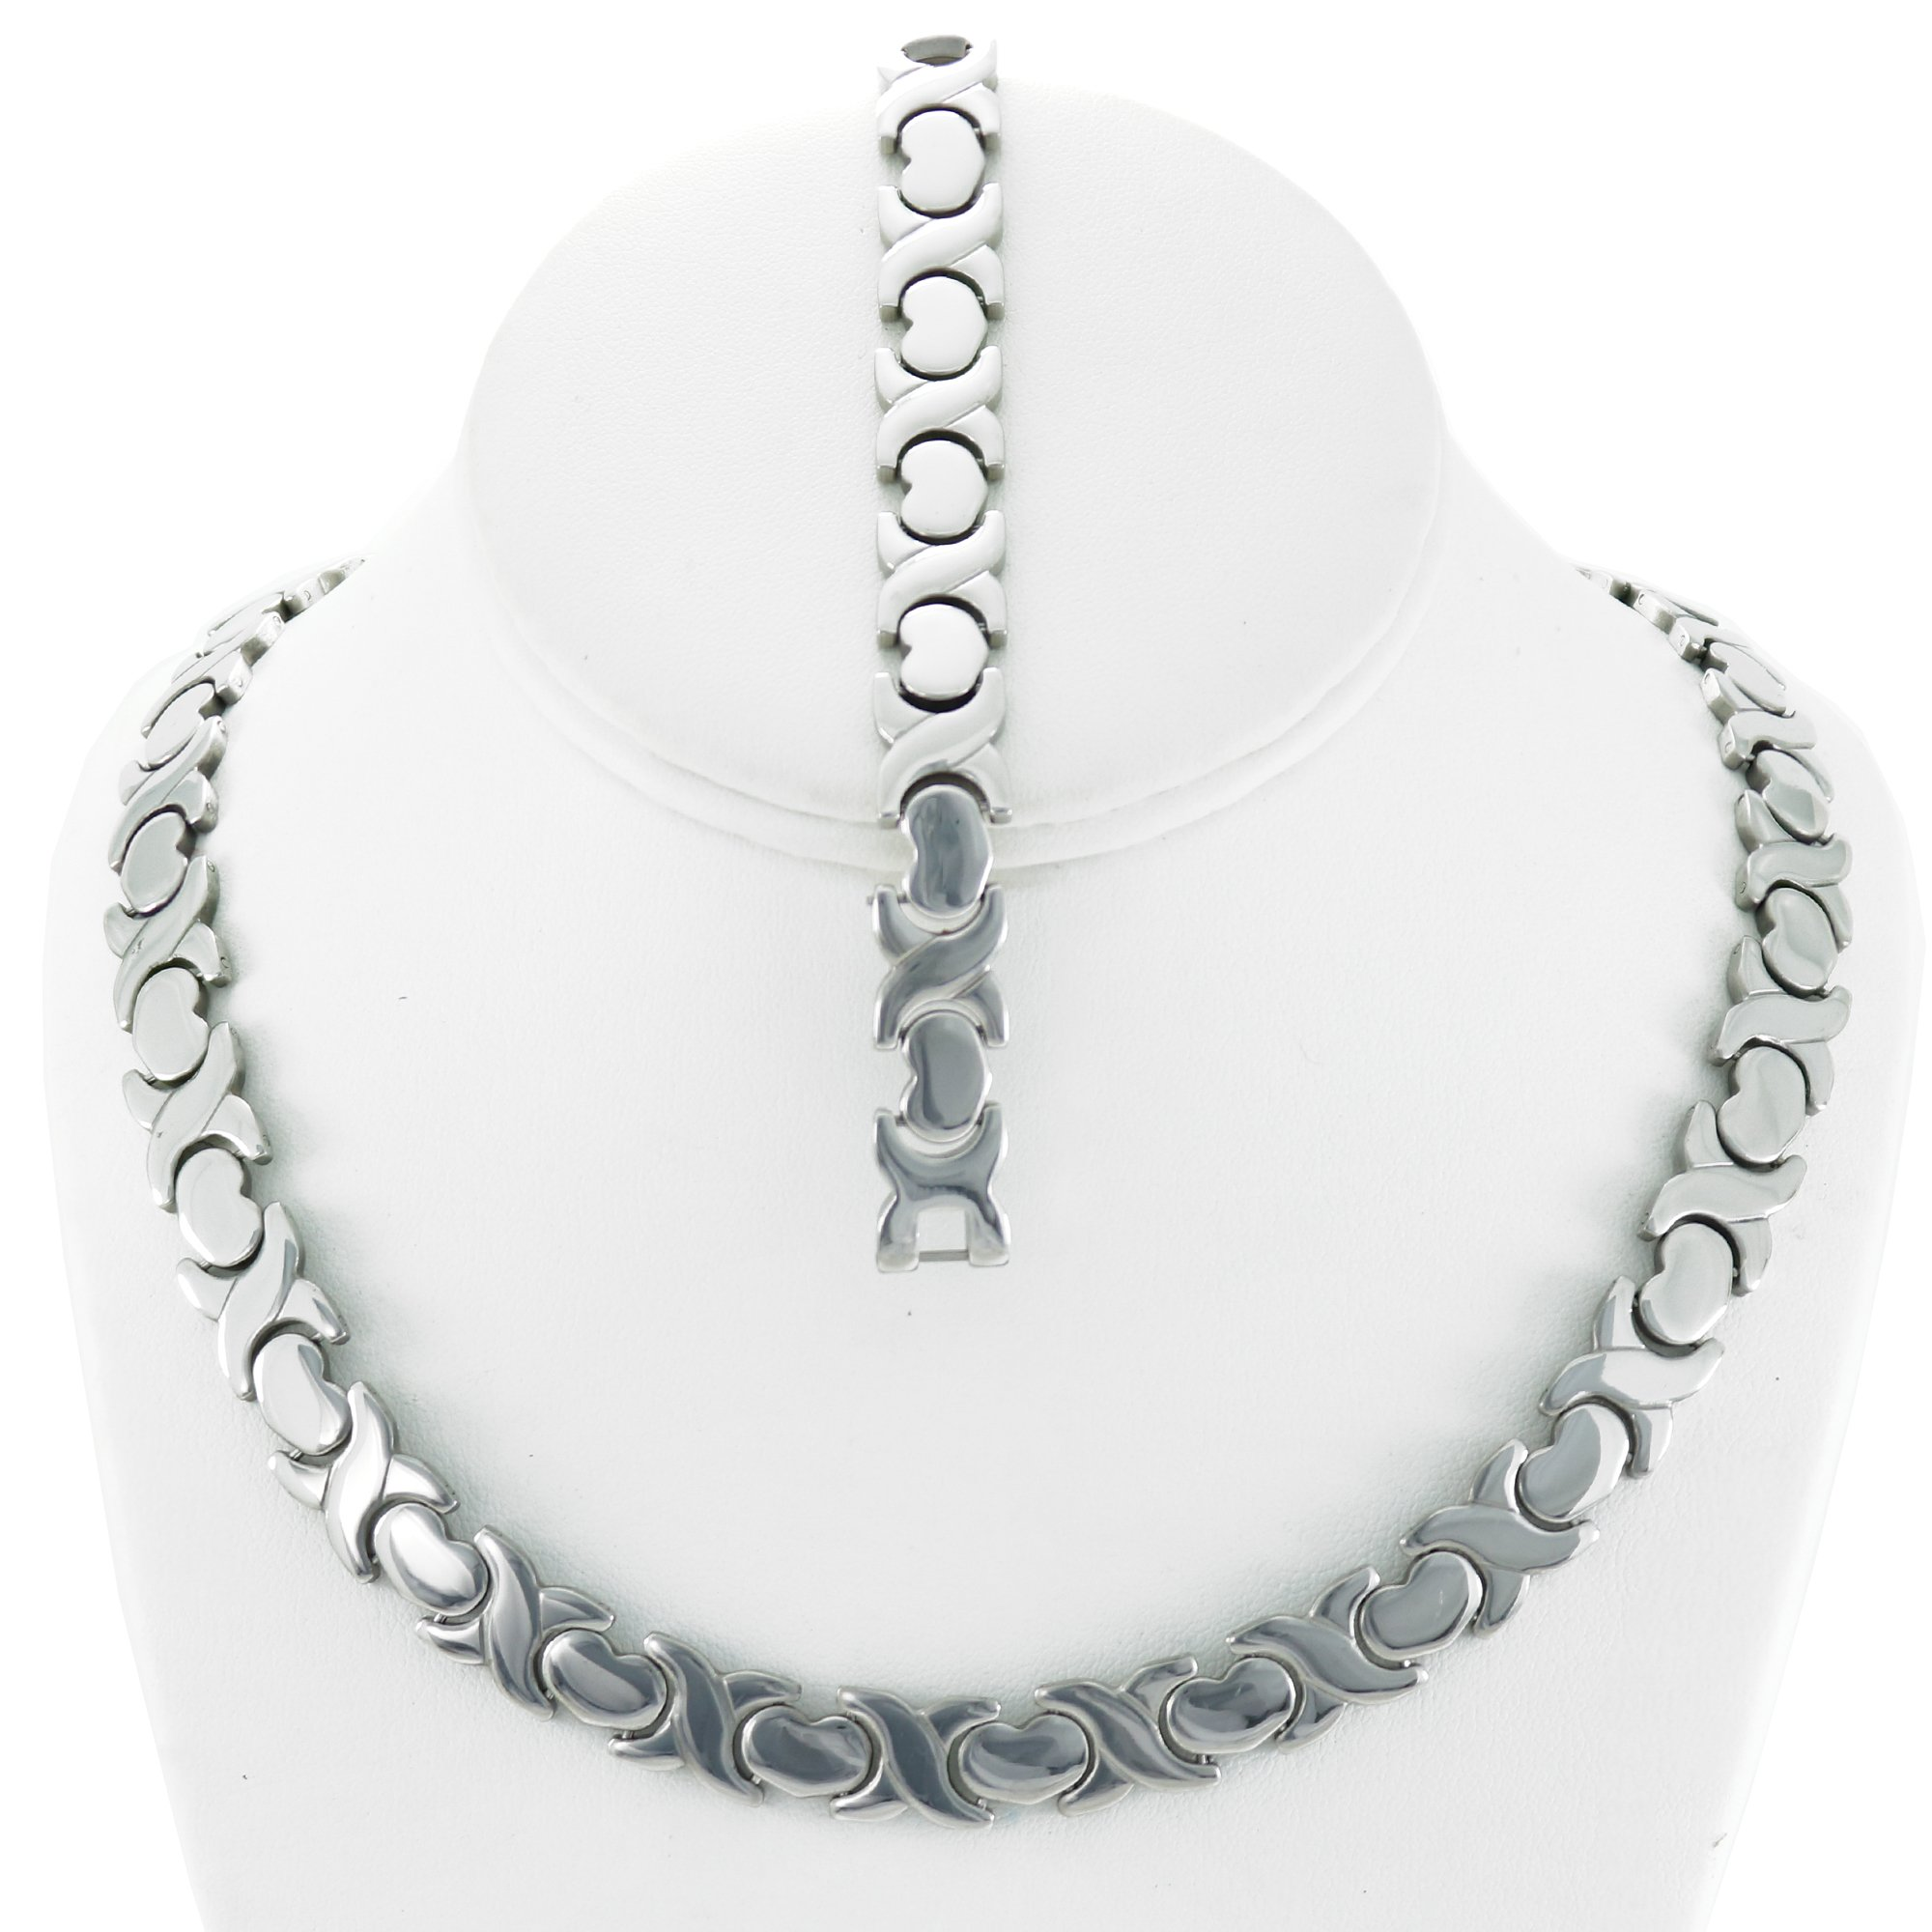 NEW 11mm Width Womens Silver Tone XOXO Stampato Necklace and Bracelet Set 18/20'' LENGTH (Necklace Length 20'')